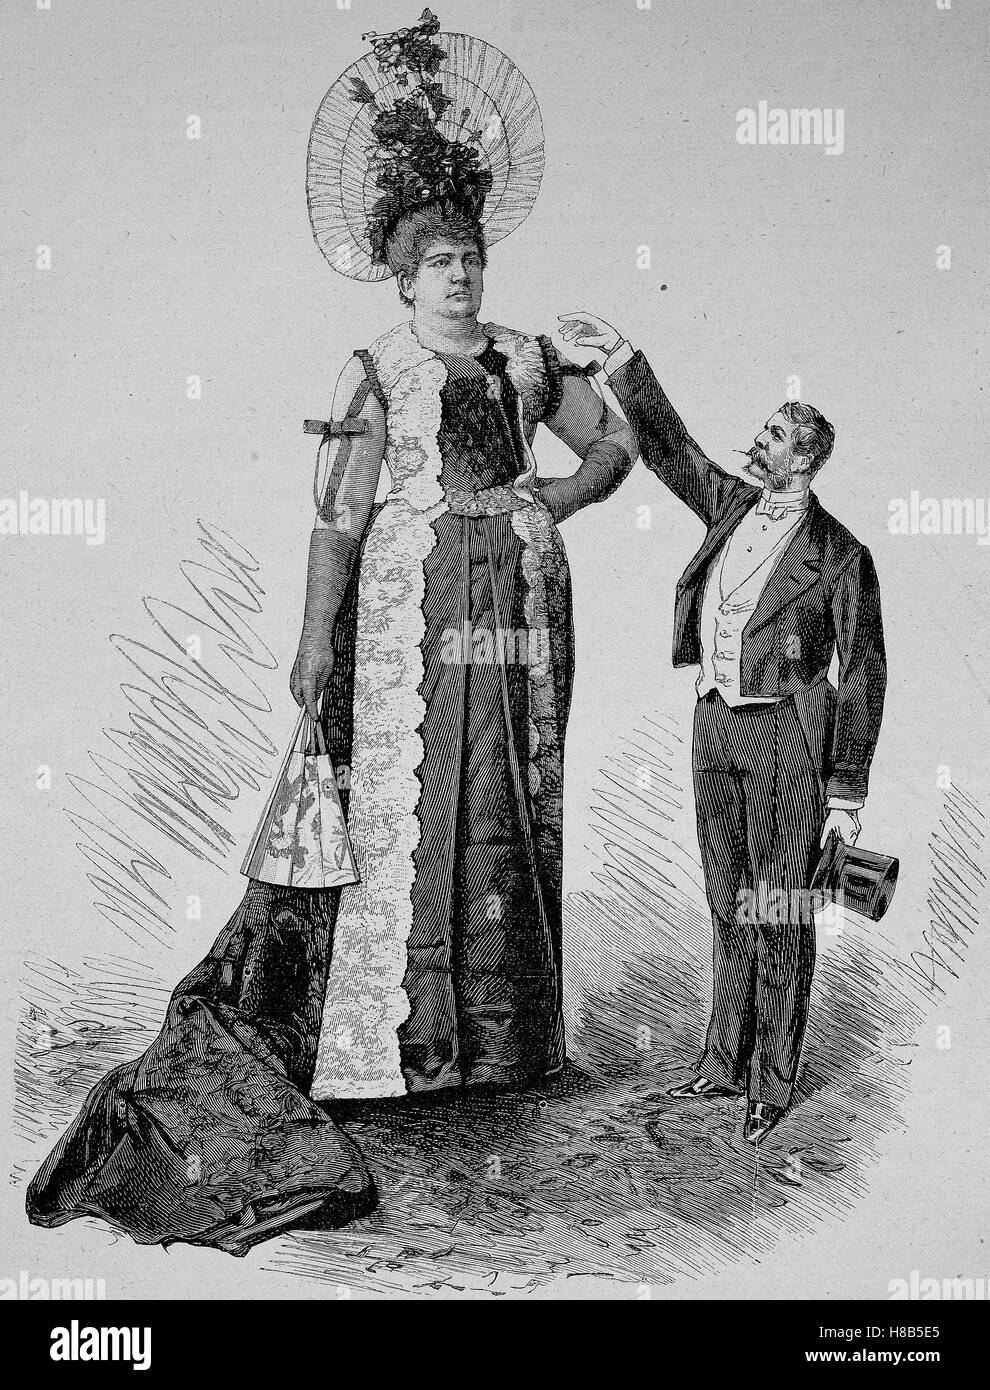 The Giantess Rosita The Greatest Lady In The World 216 Cm Tall Woodcut From 1892